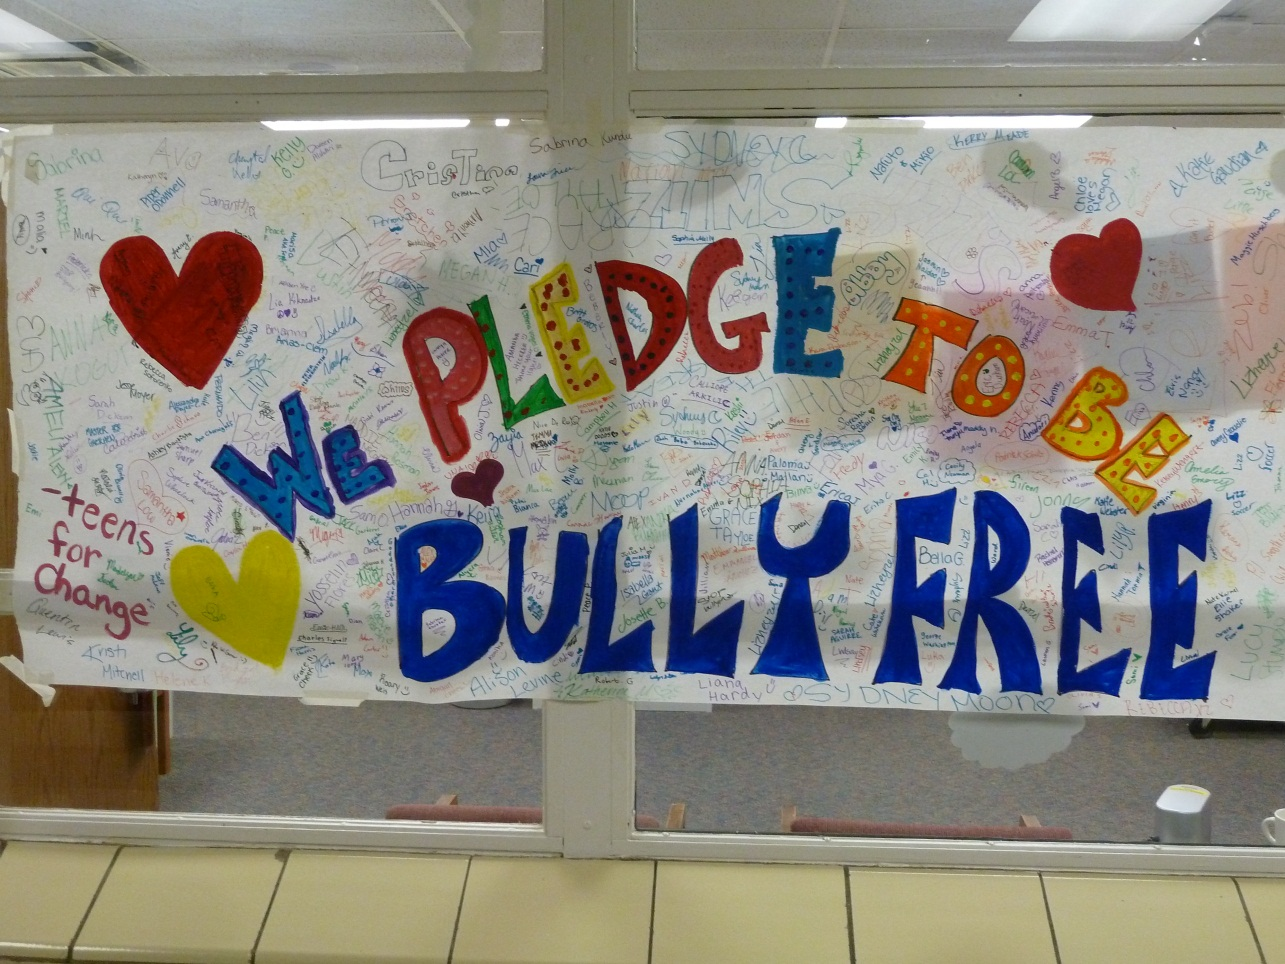 bully_free_pledge_banner